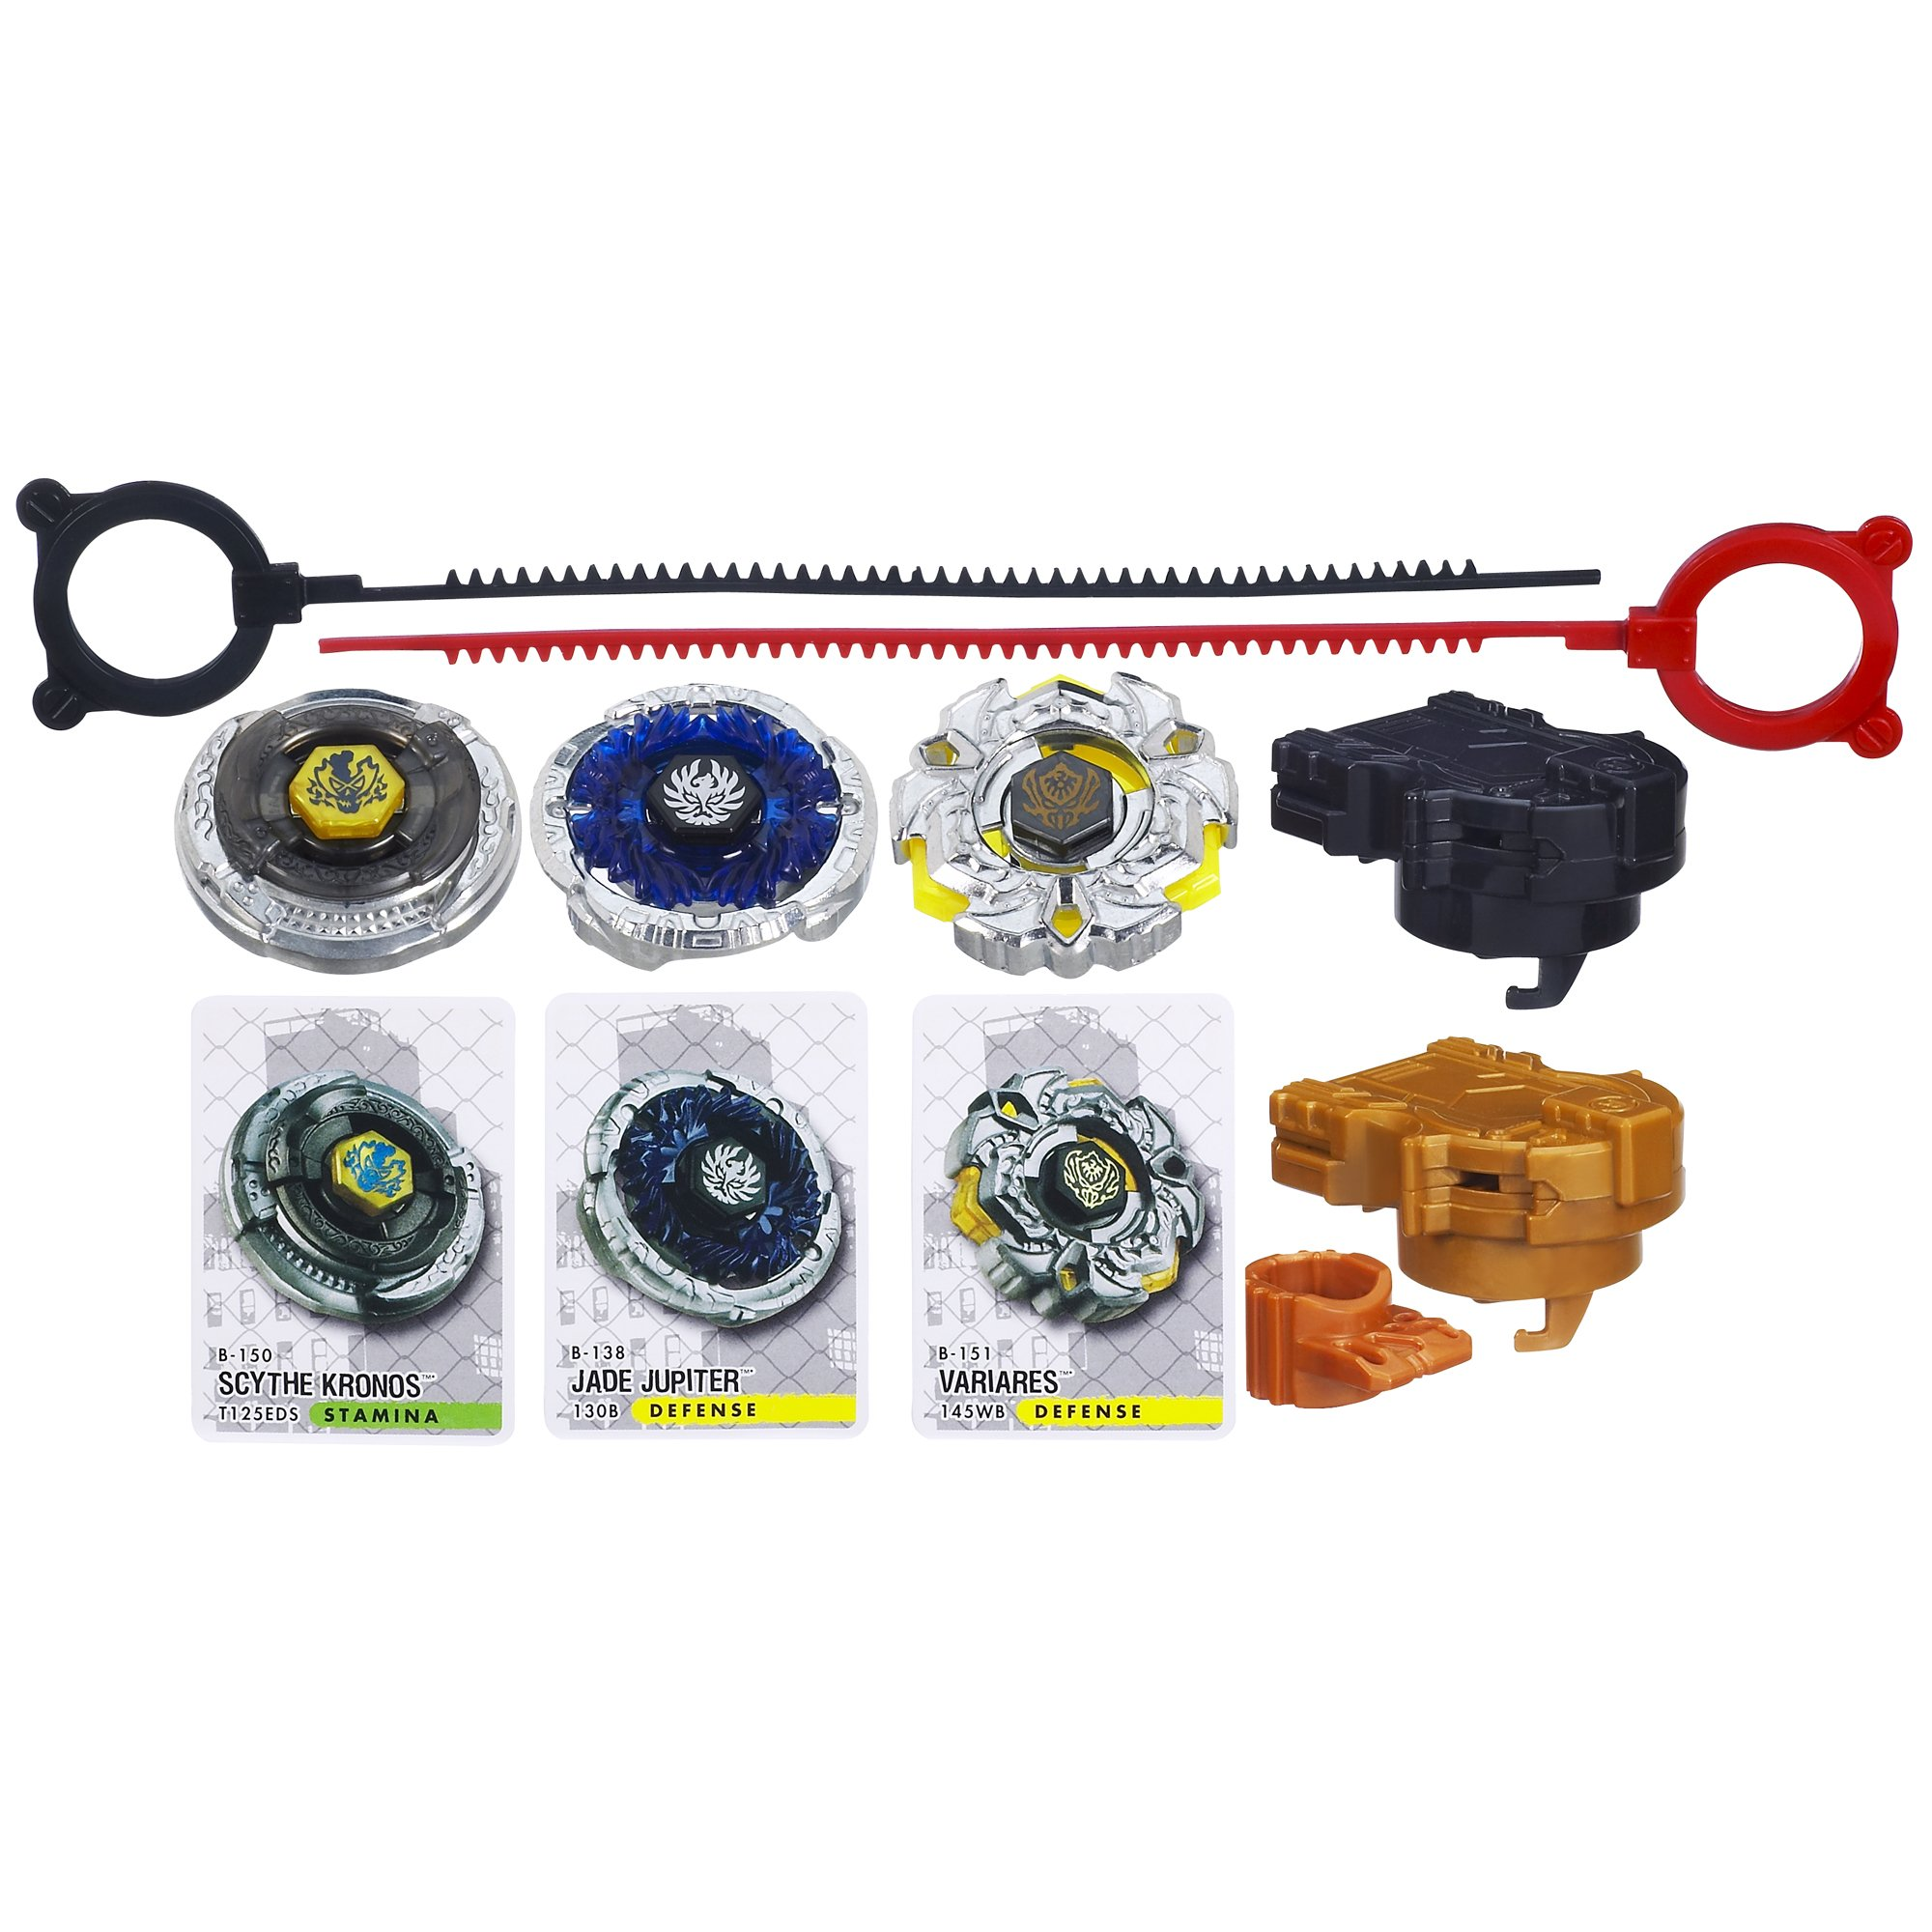 Beyblade Metal Fury Performance Top System Legendary Bladers: Descendants Set